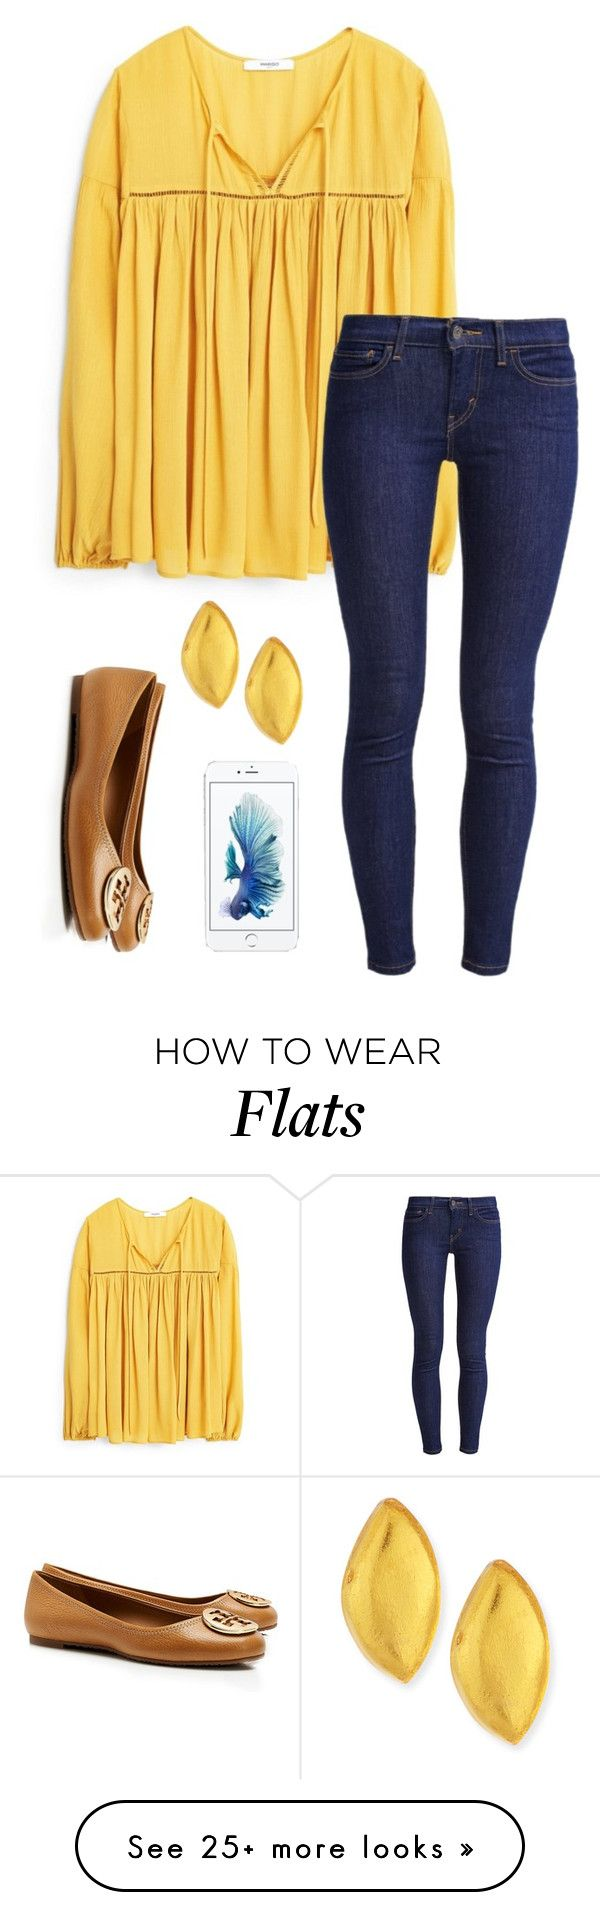 Black dress yellow accessories - Best 25 Yellow Dress Shoes Ideas On Pinterest Yellow Dress Outfits Yellow Dress Accessories And Yellow Dress Casual